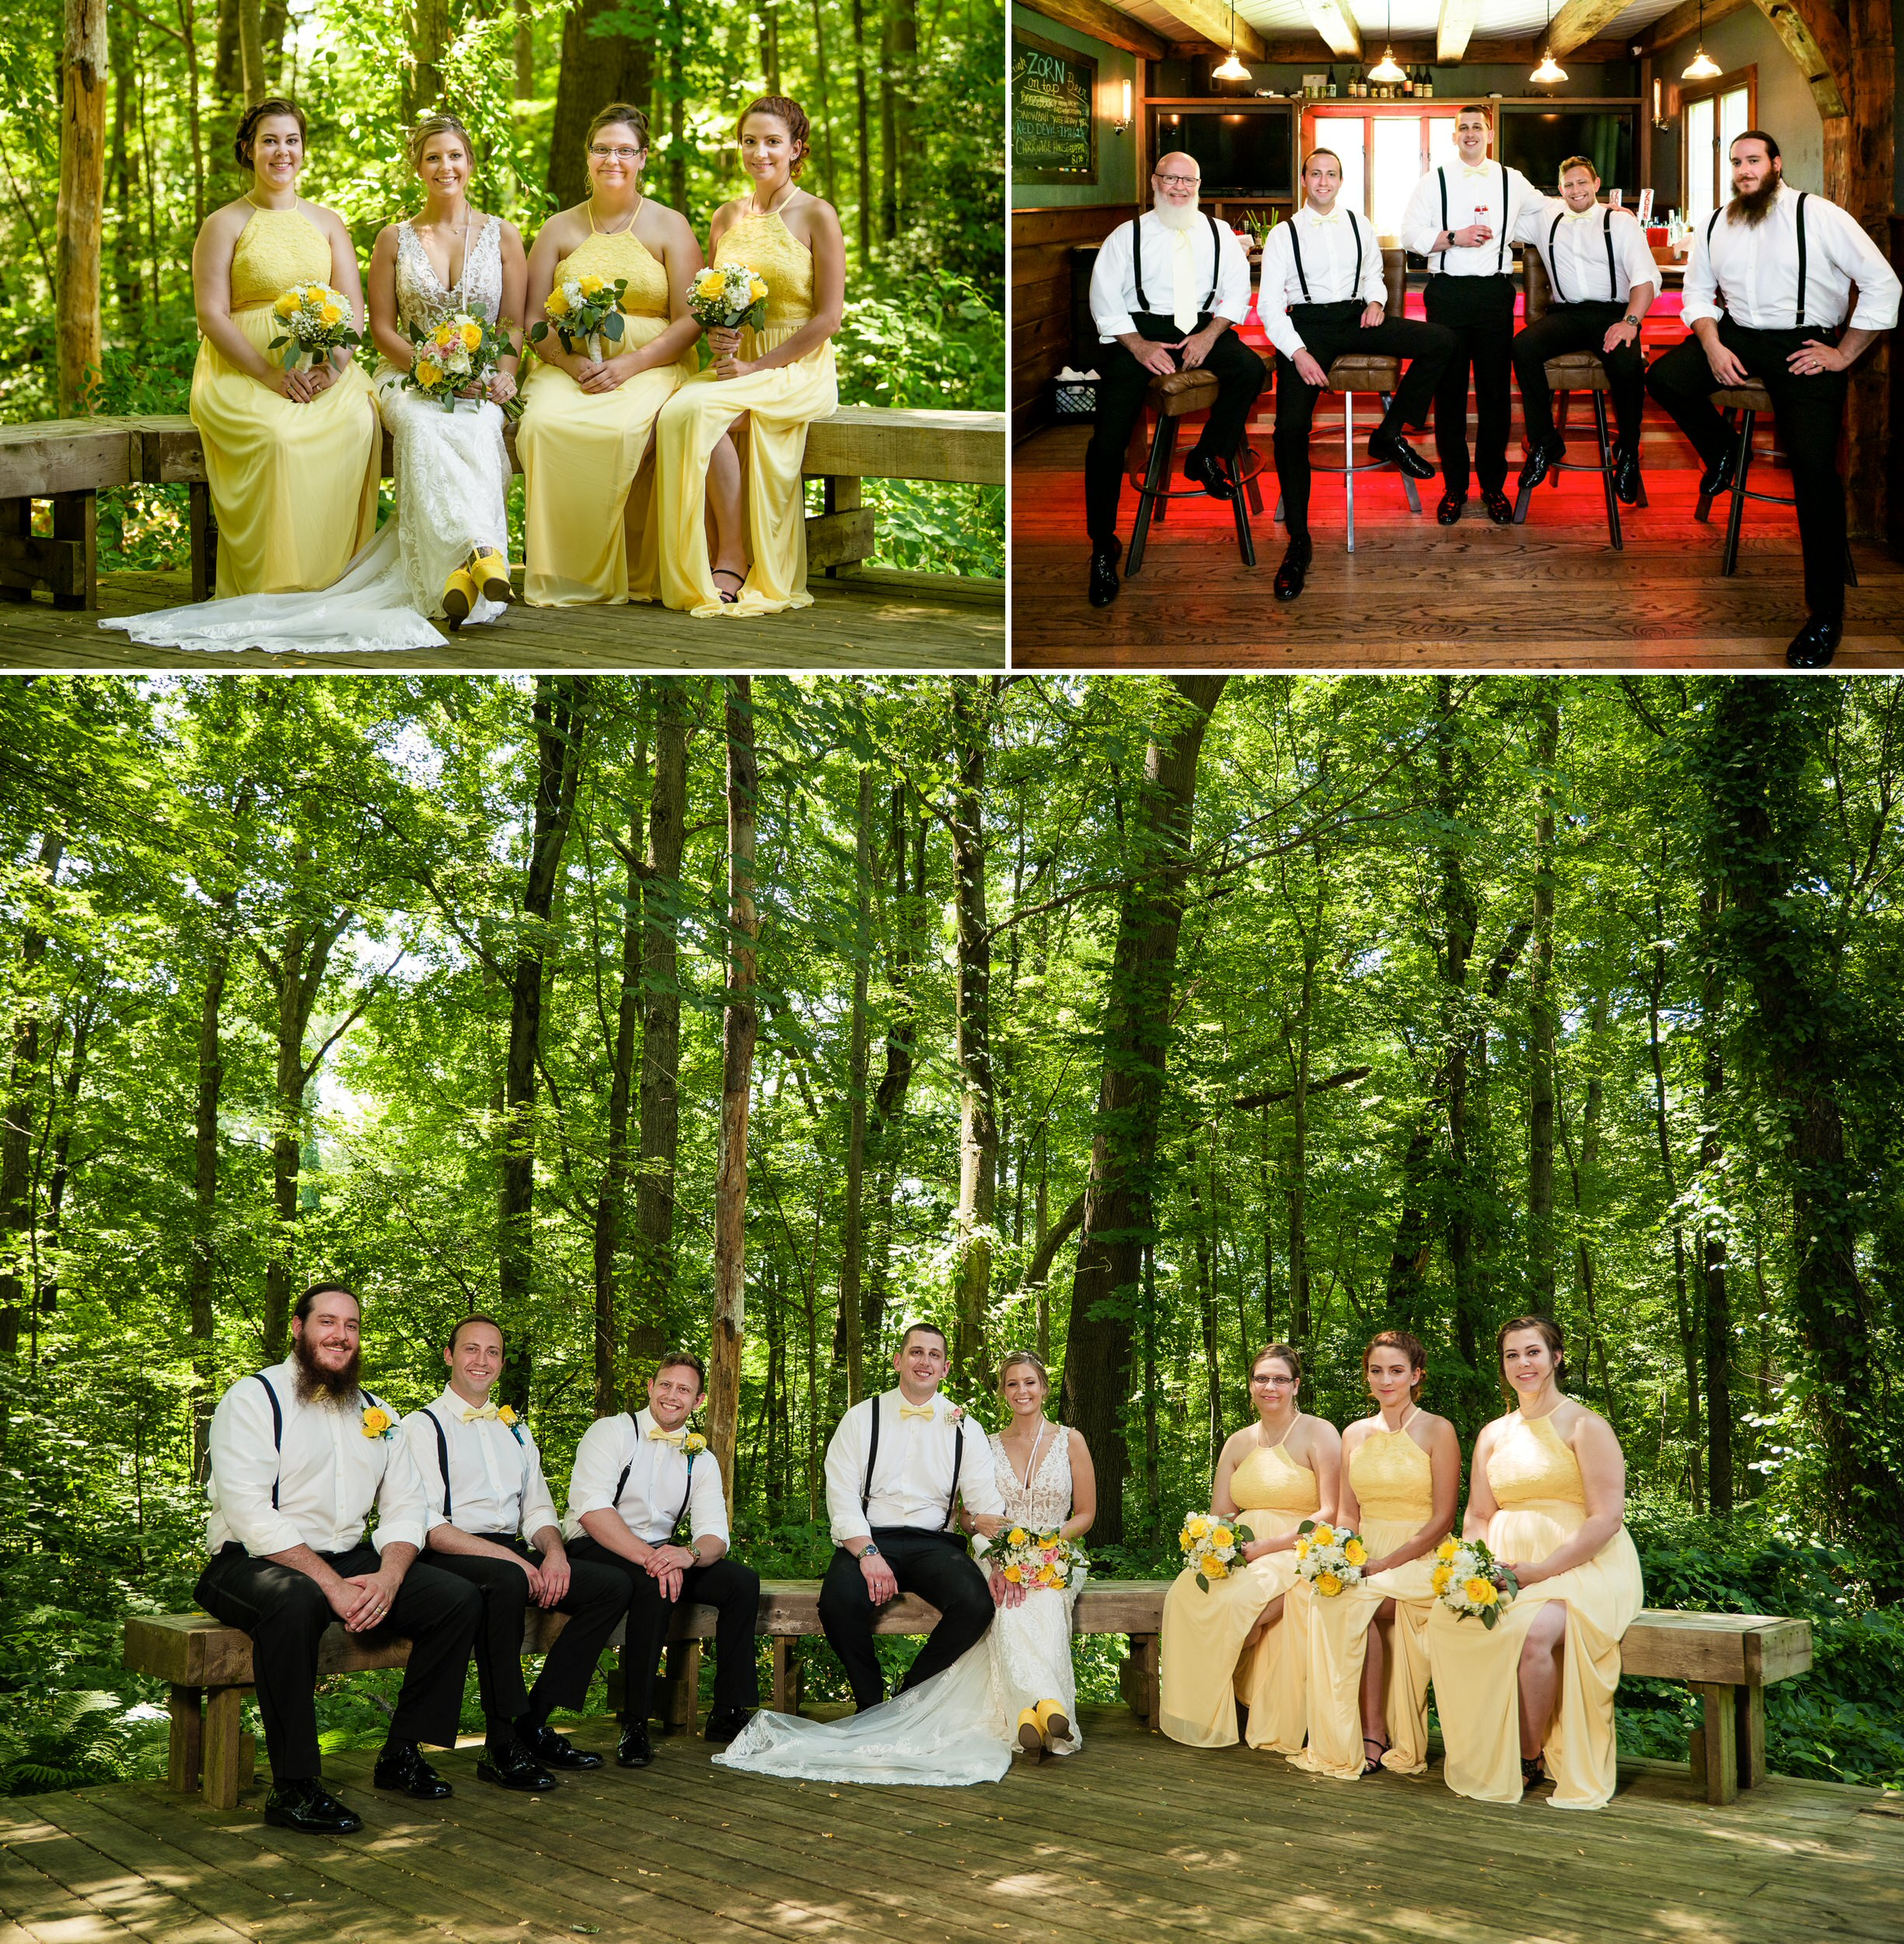 The wedding party in the woods.